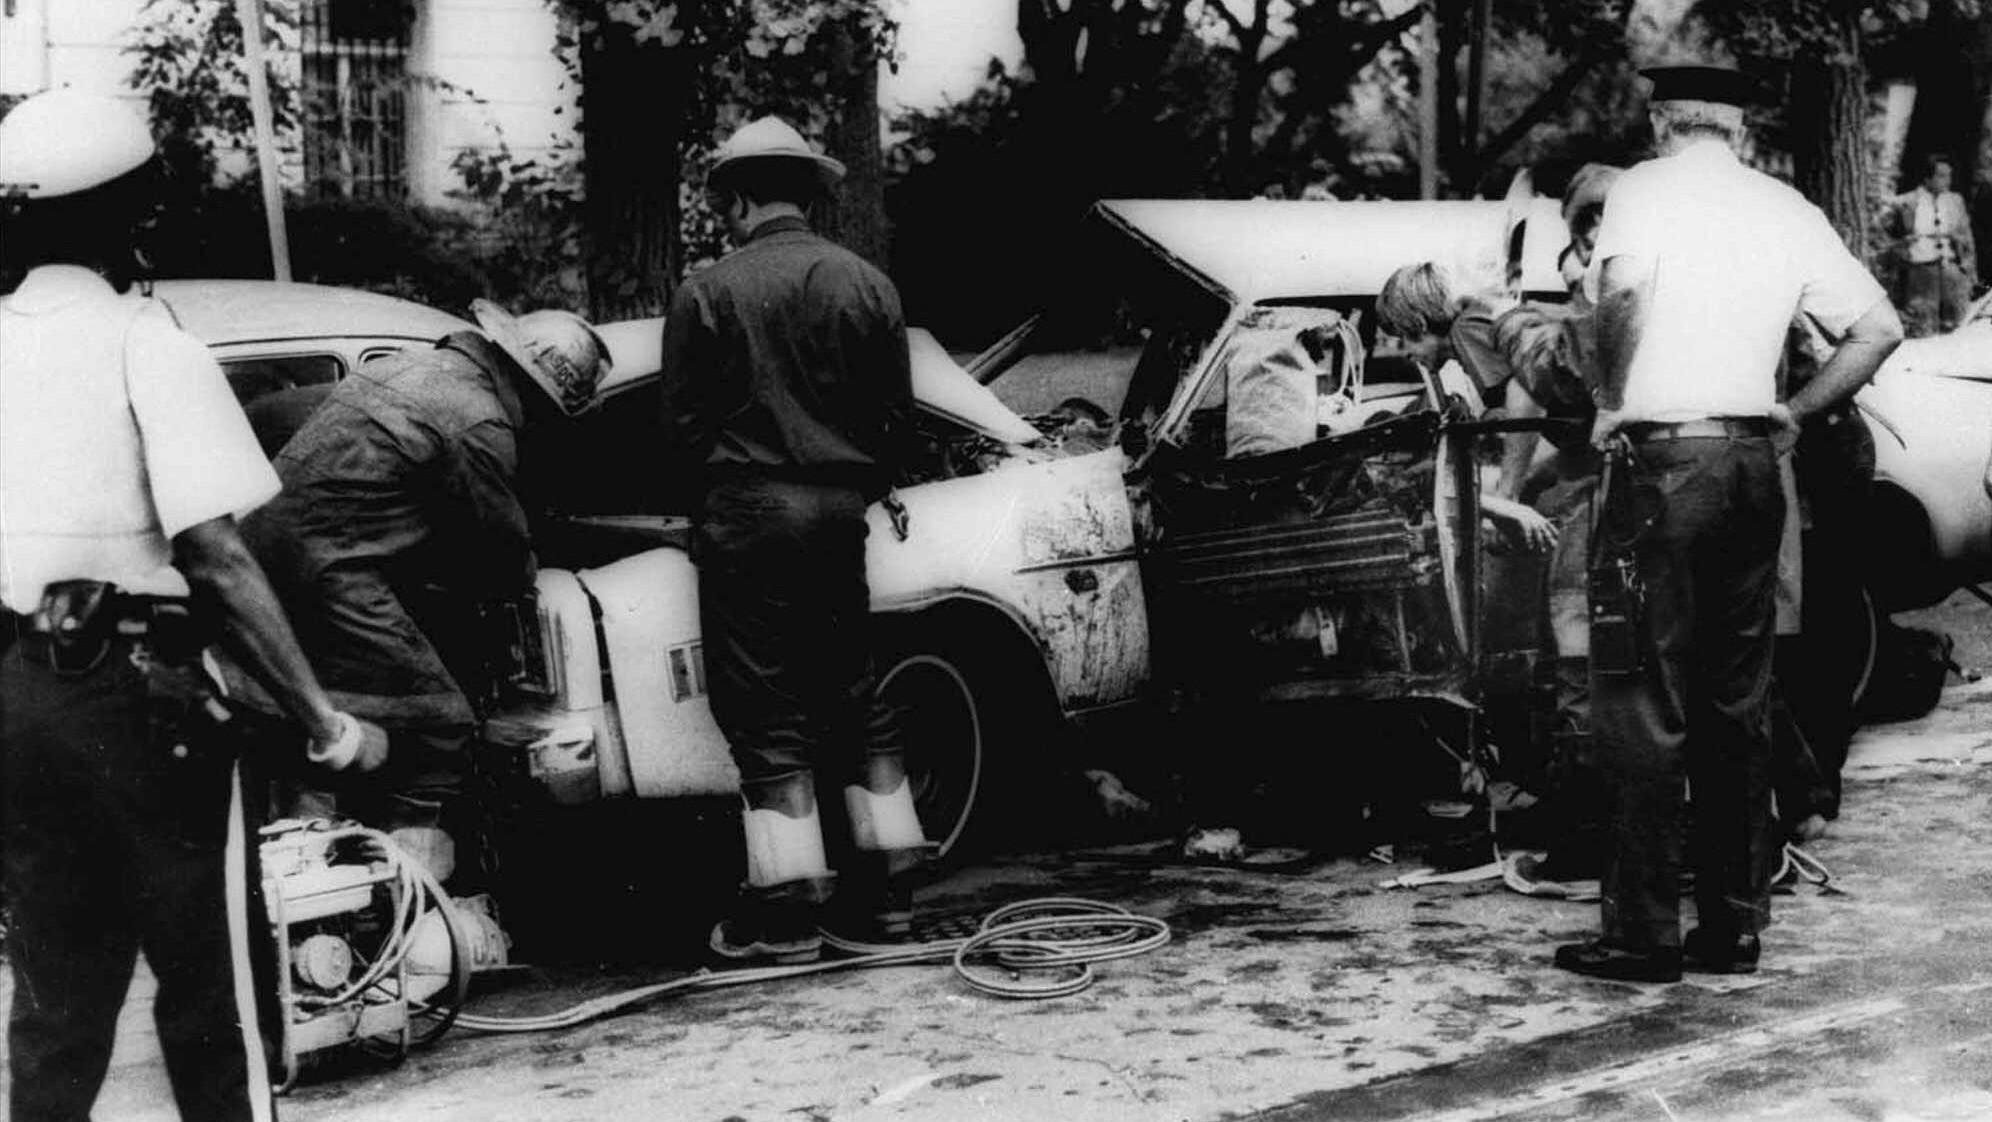 Pinochet Considered Killing His Own Spy Chief to Cover Up 1976 Washington DC Car-Bombing